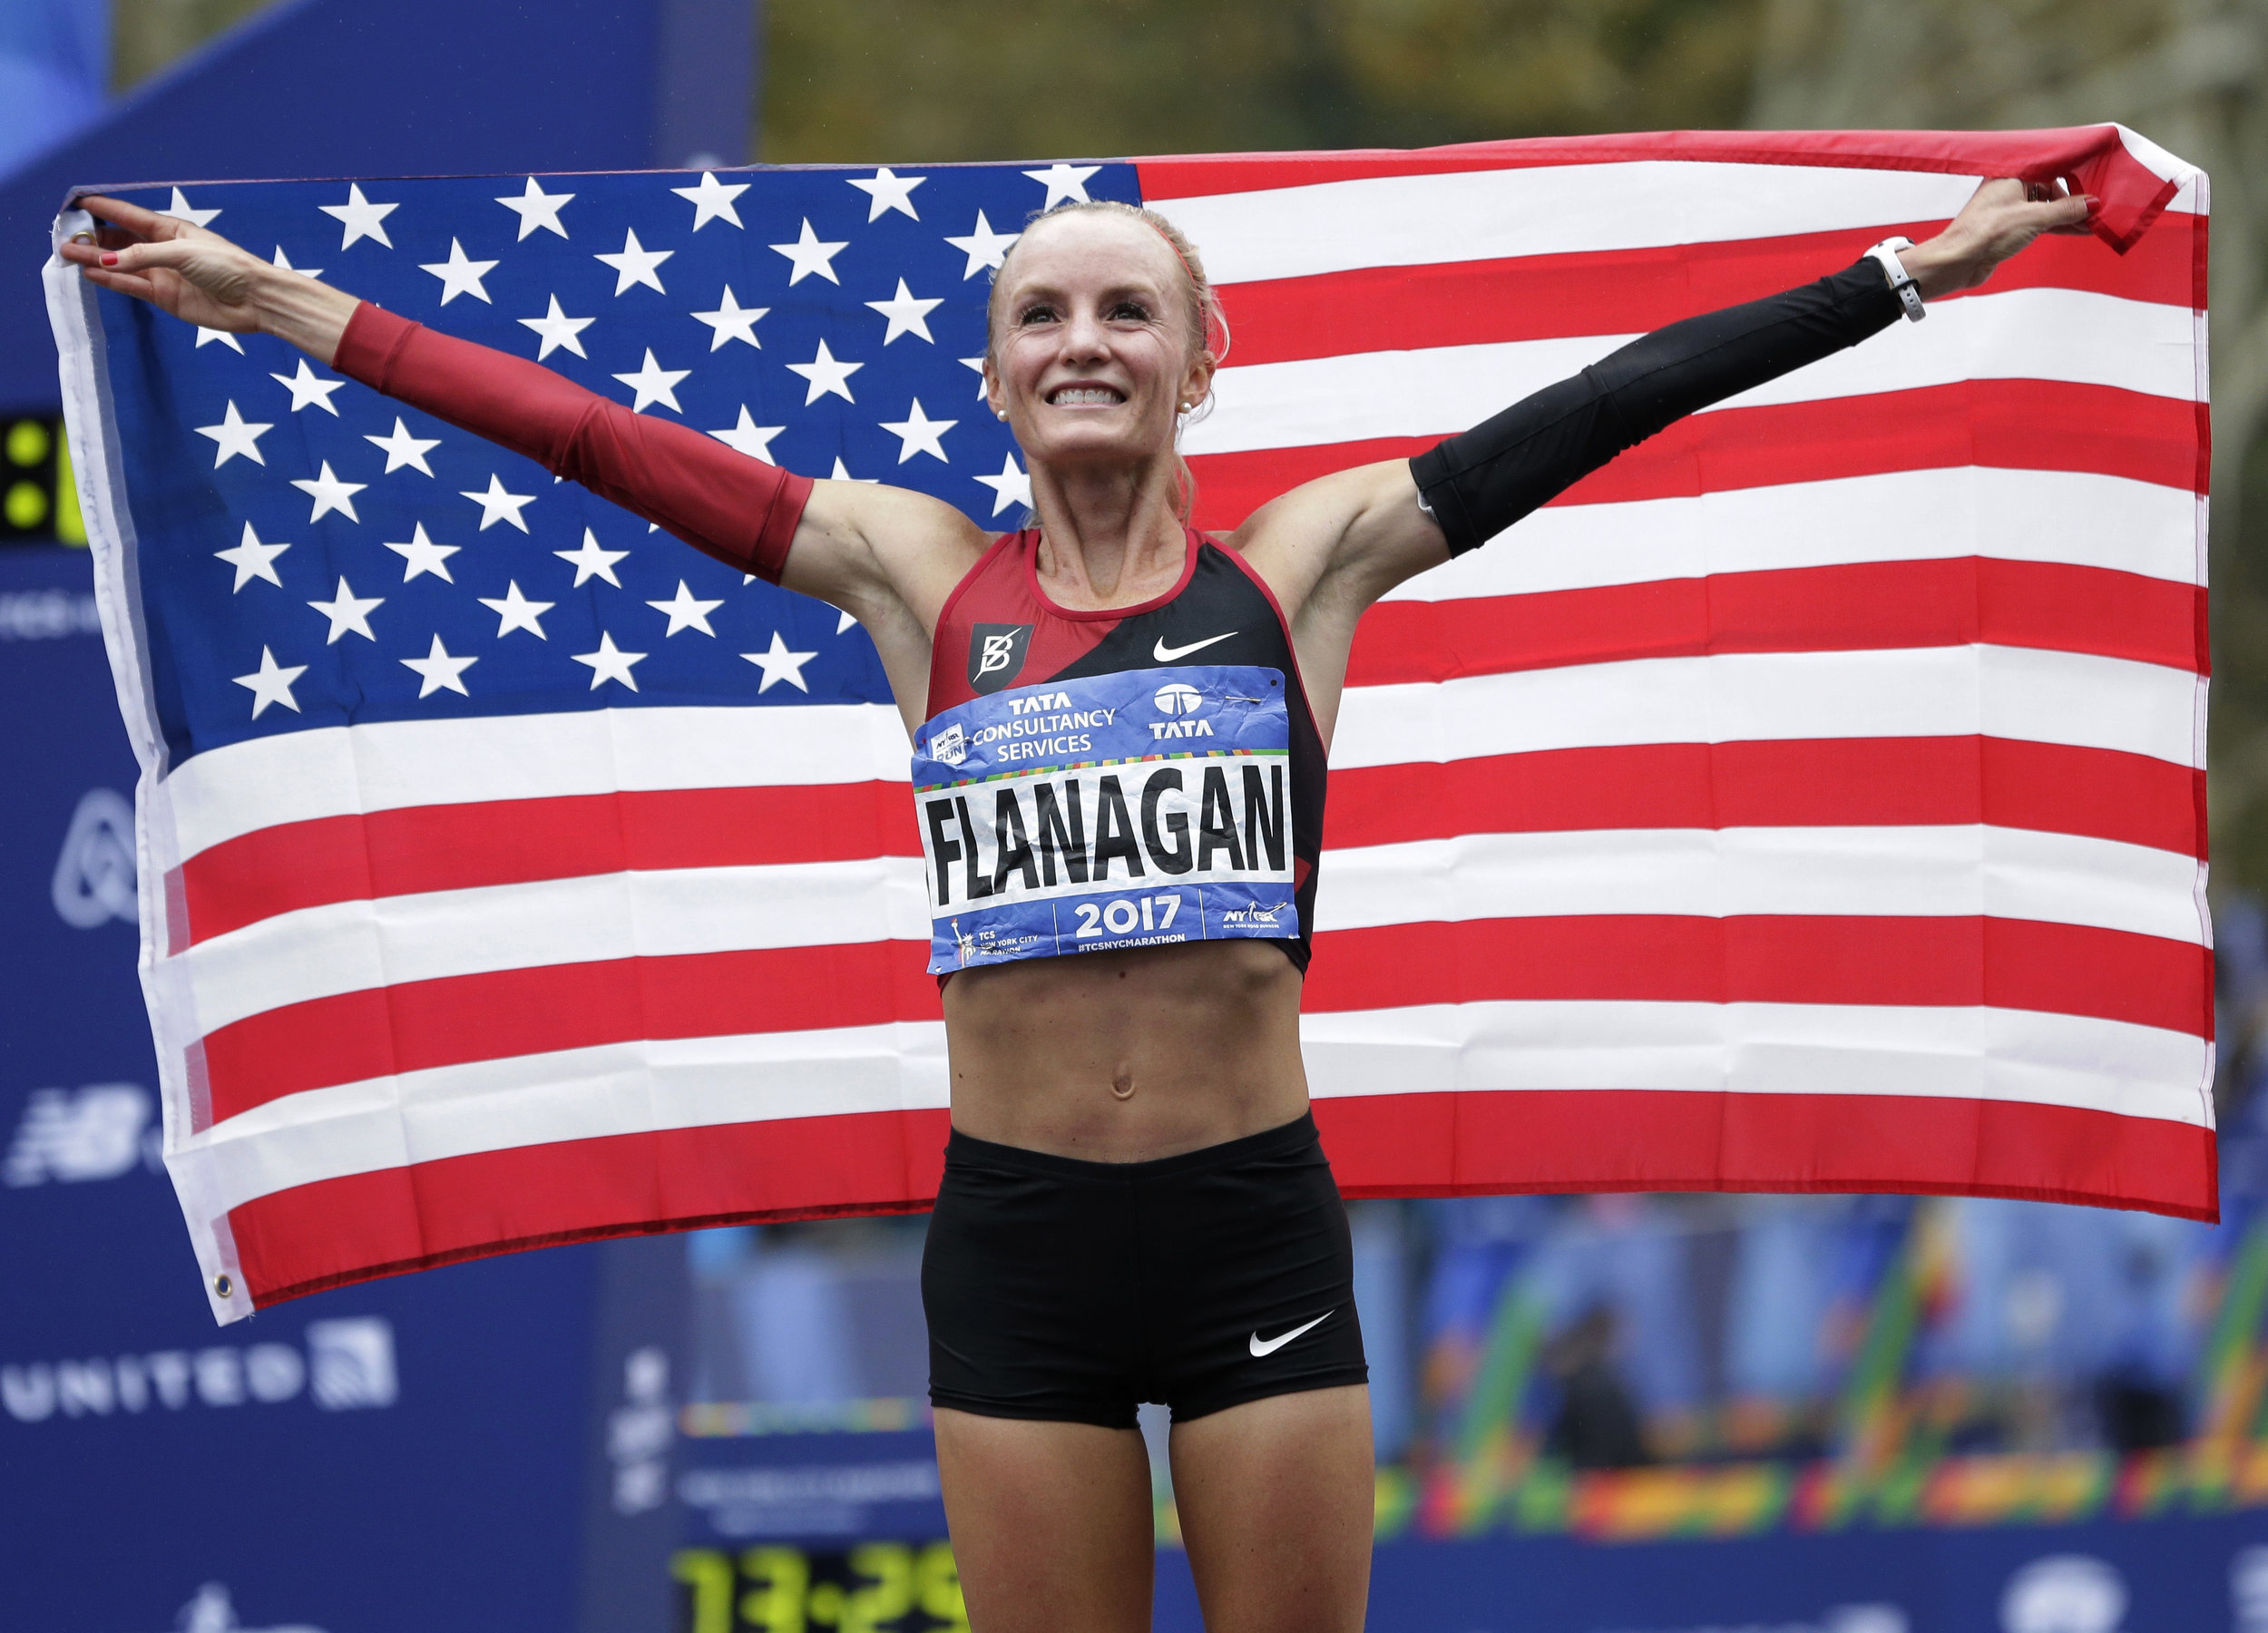 2017 New York City Marathon champion Shalane Flanagan became the first American woman to win the race in 30 years. AP file photo by Seth Wenig.